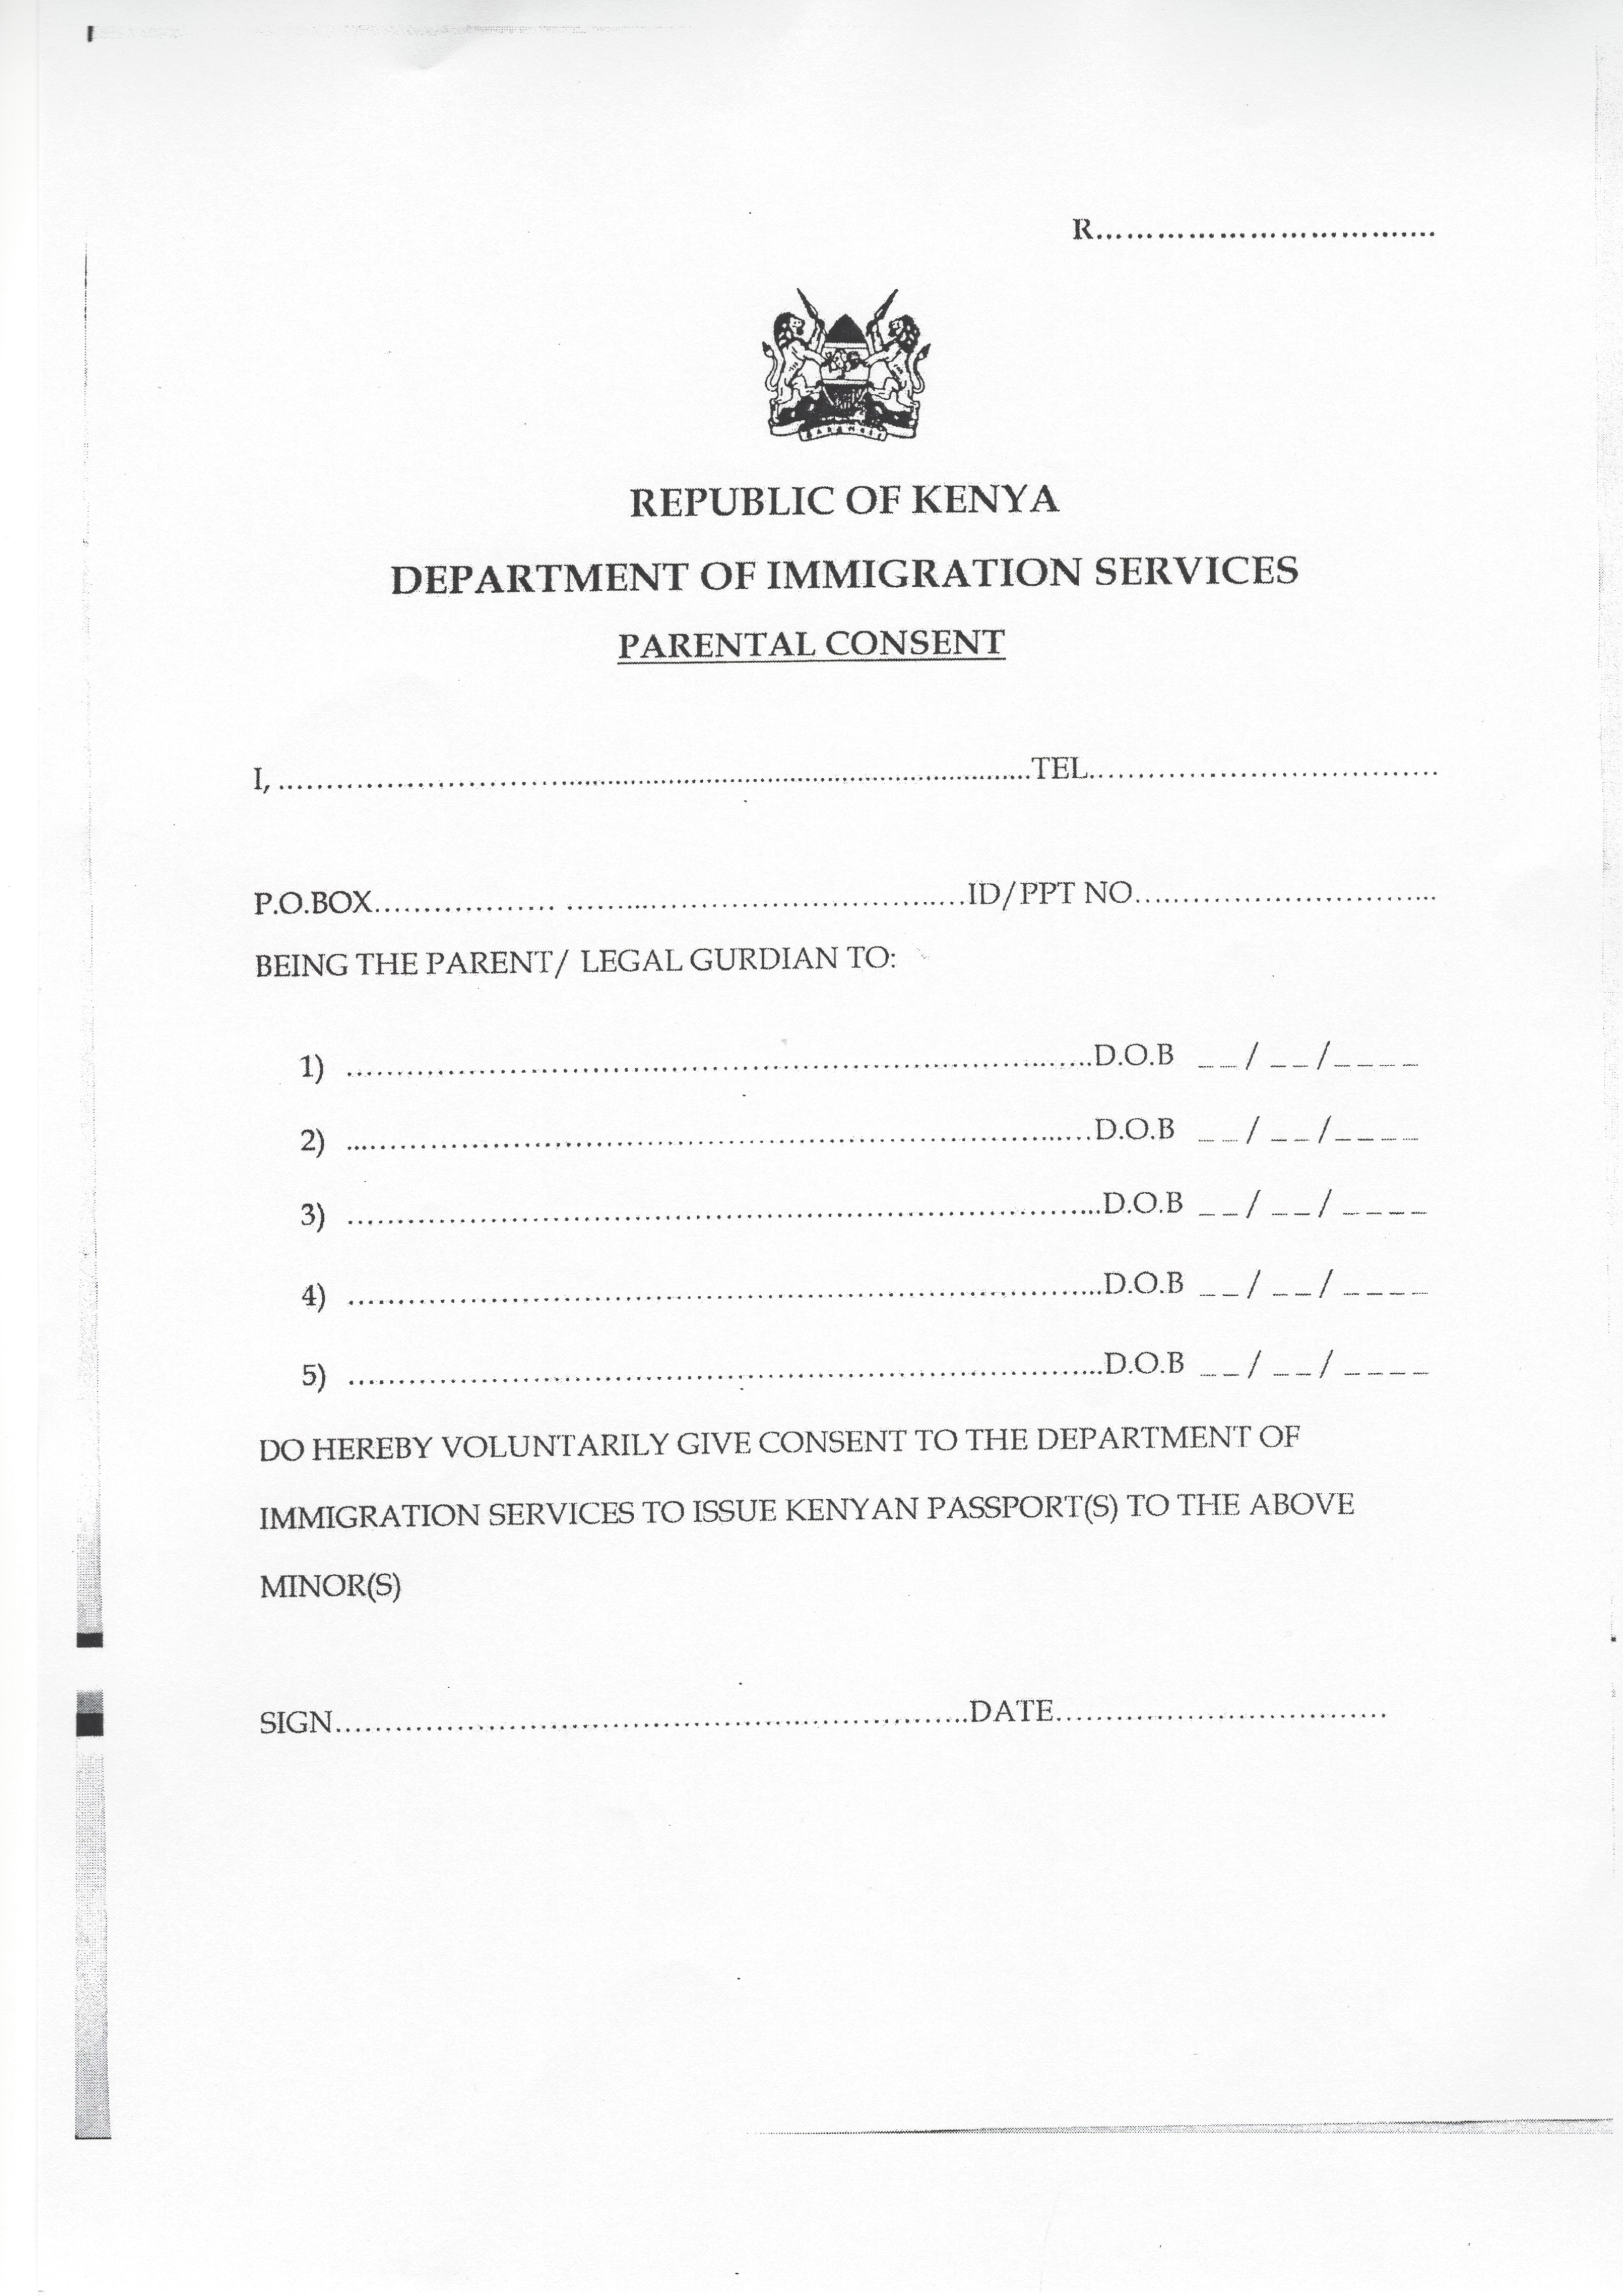 Application Form For Lost Kenyan Passport